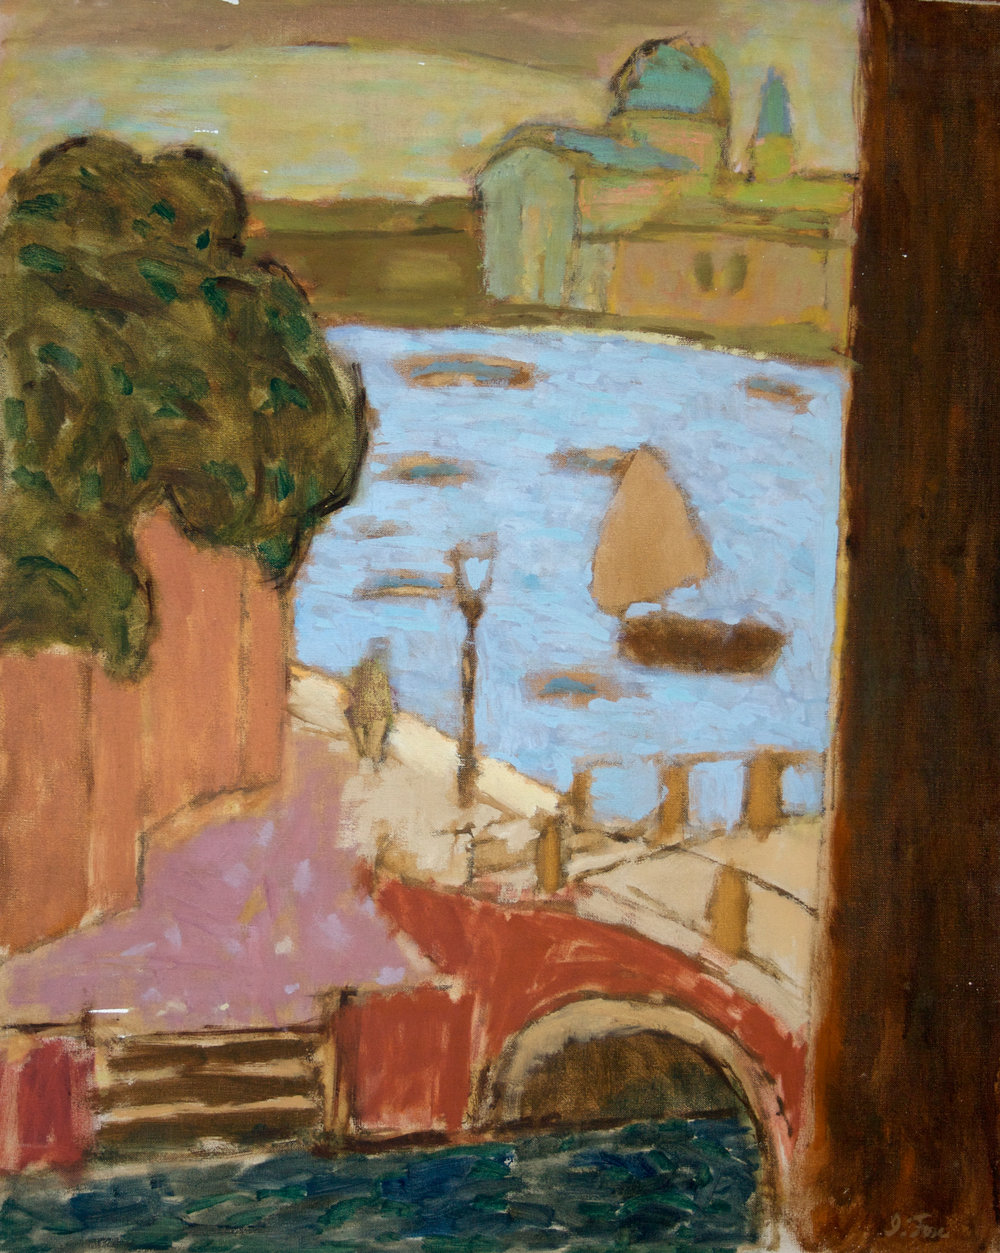 1963_View_From_the_Zattere_Venice_oil_on_linen_30x24in_PF307.jpg